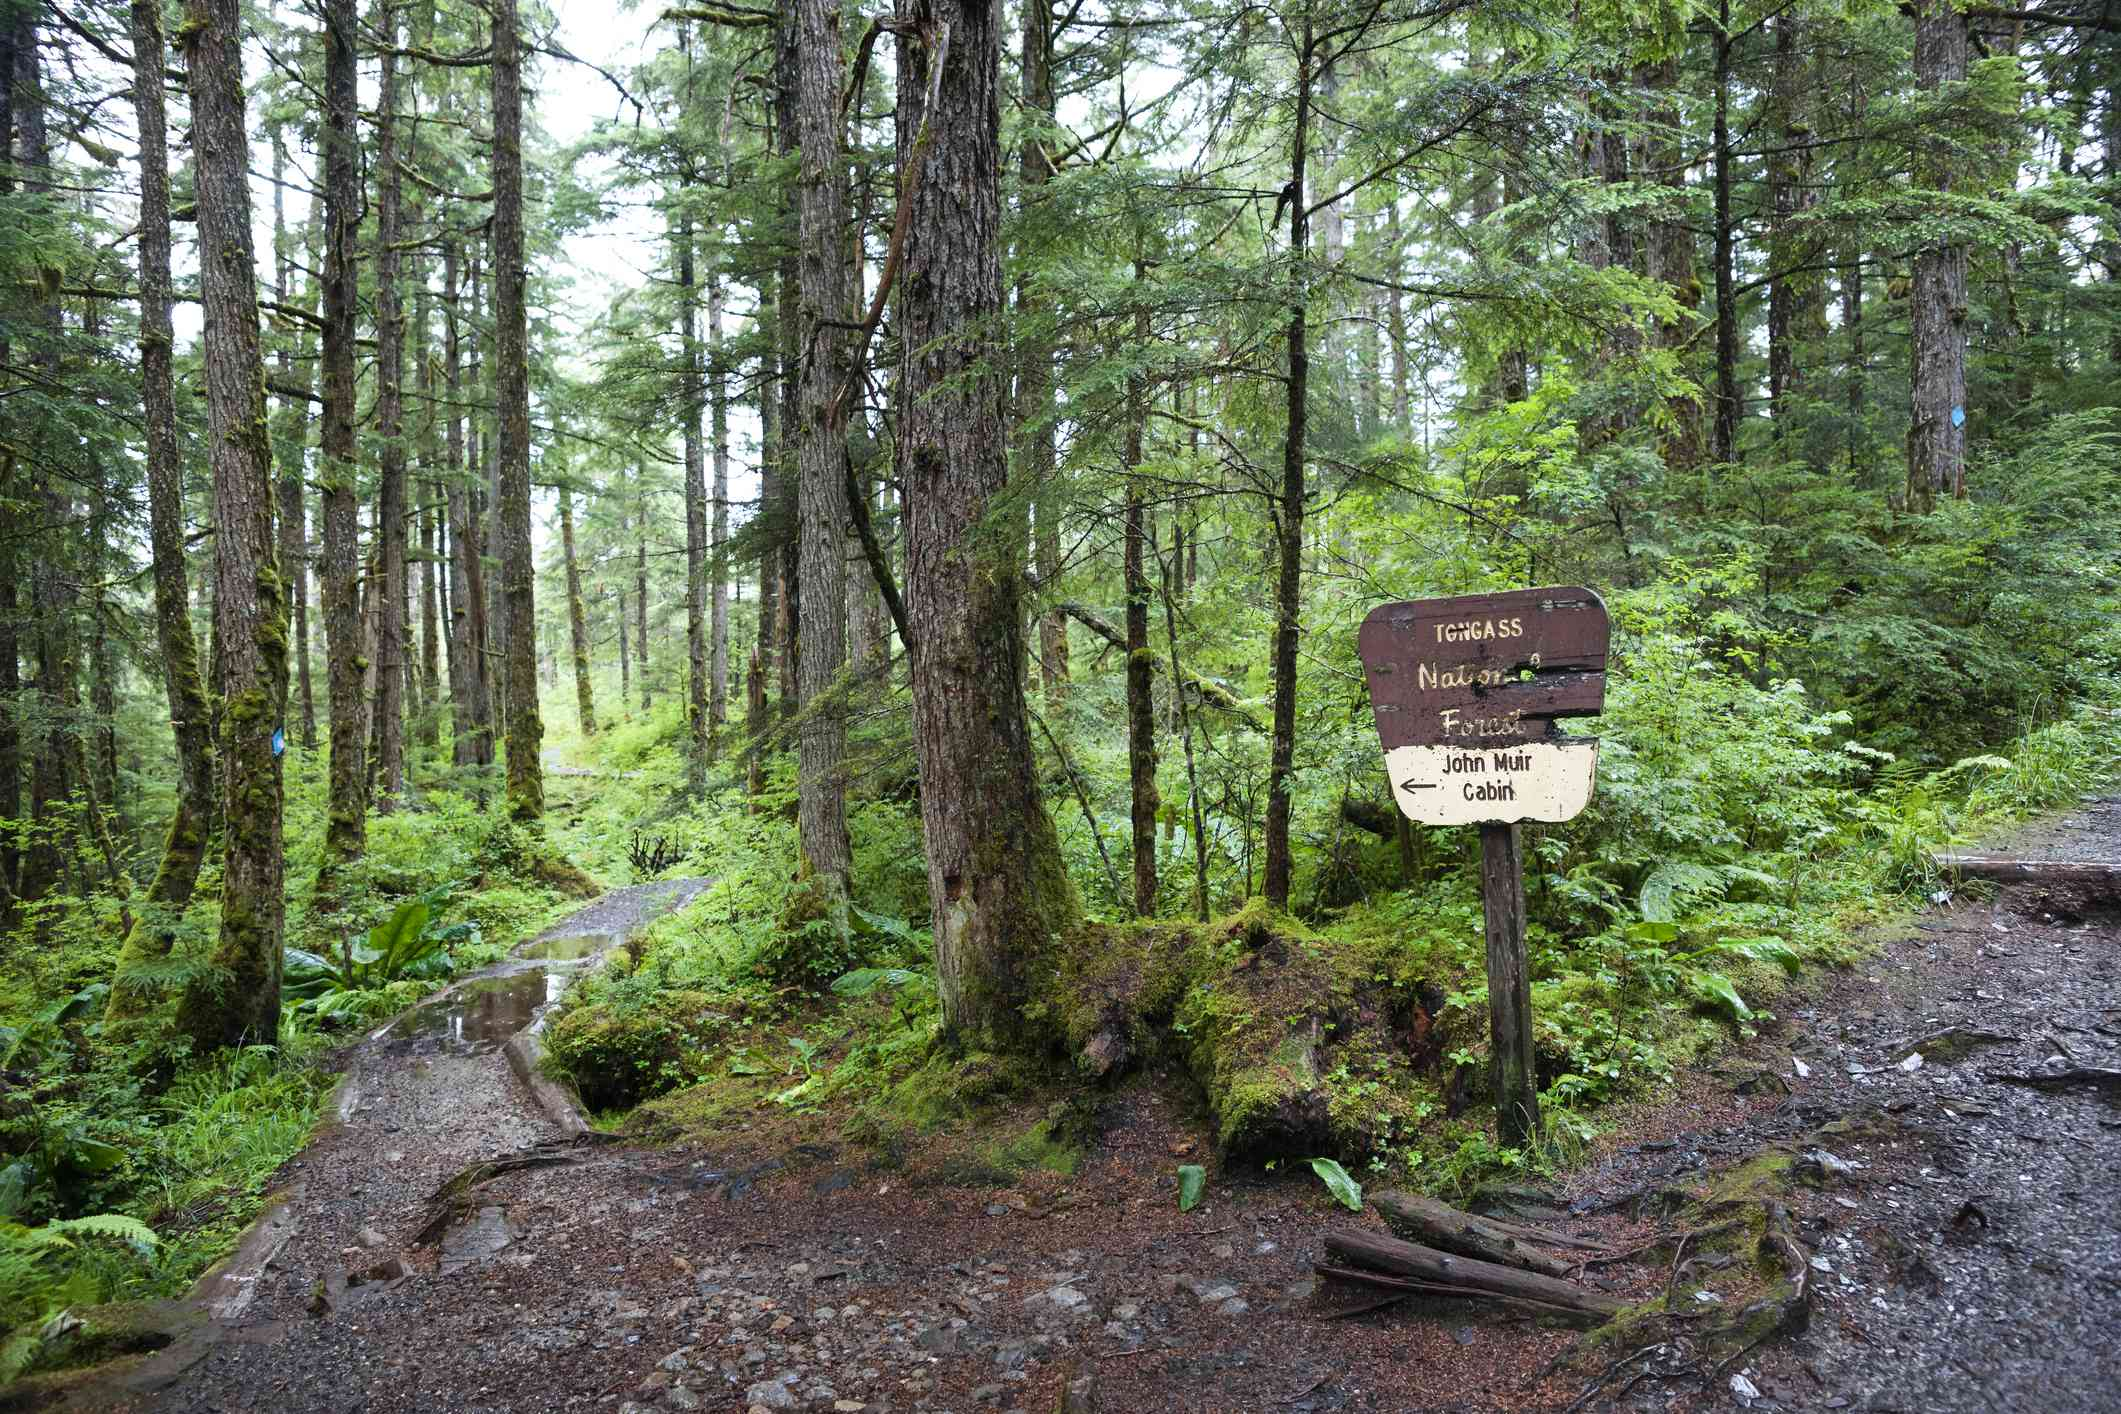 fork of two dirt paths leading past mossy trees and logs on a rainy day